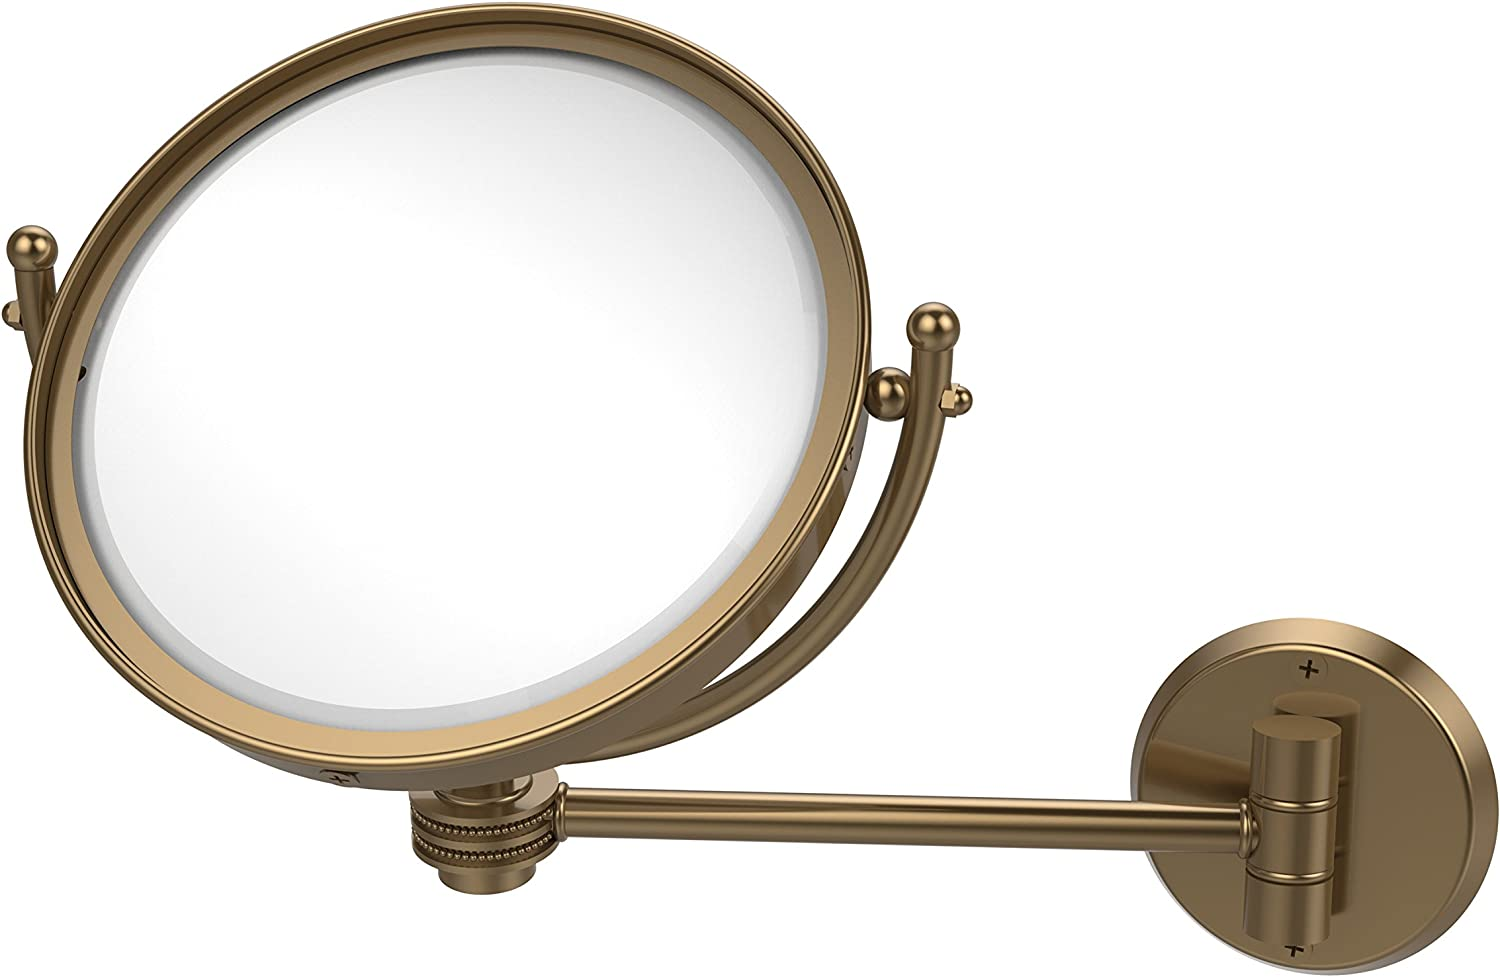 Allied Brass WM-5D 2X-BBR 8-Inch Wall Mounted Make-Up Mirror with 2x Magnification, Brushed Bronze